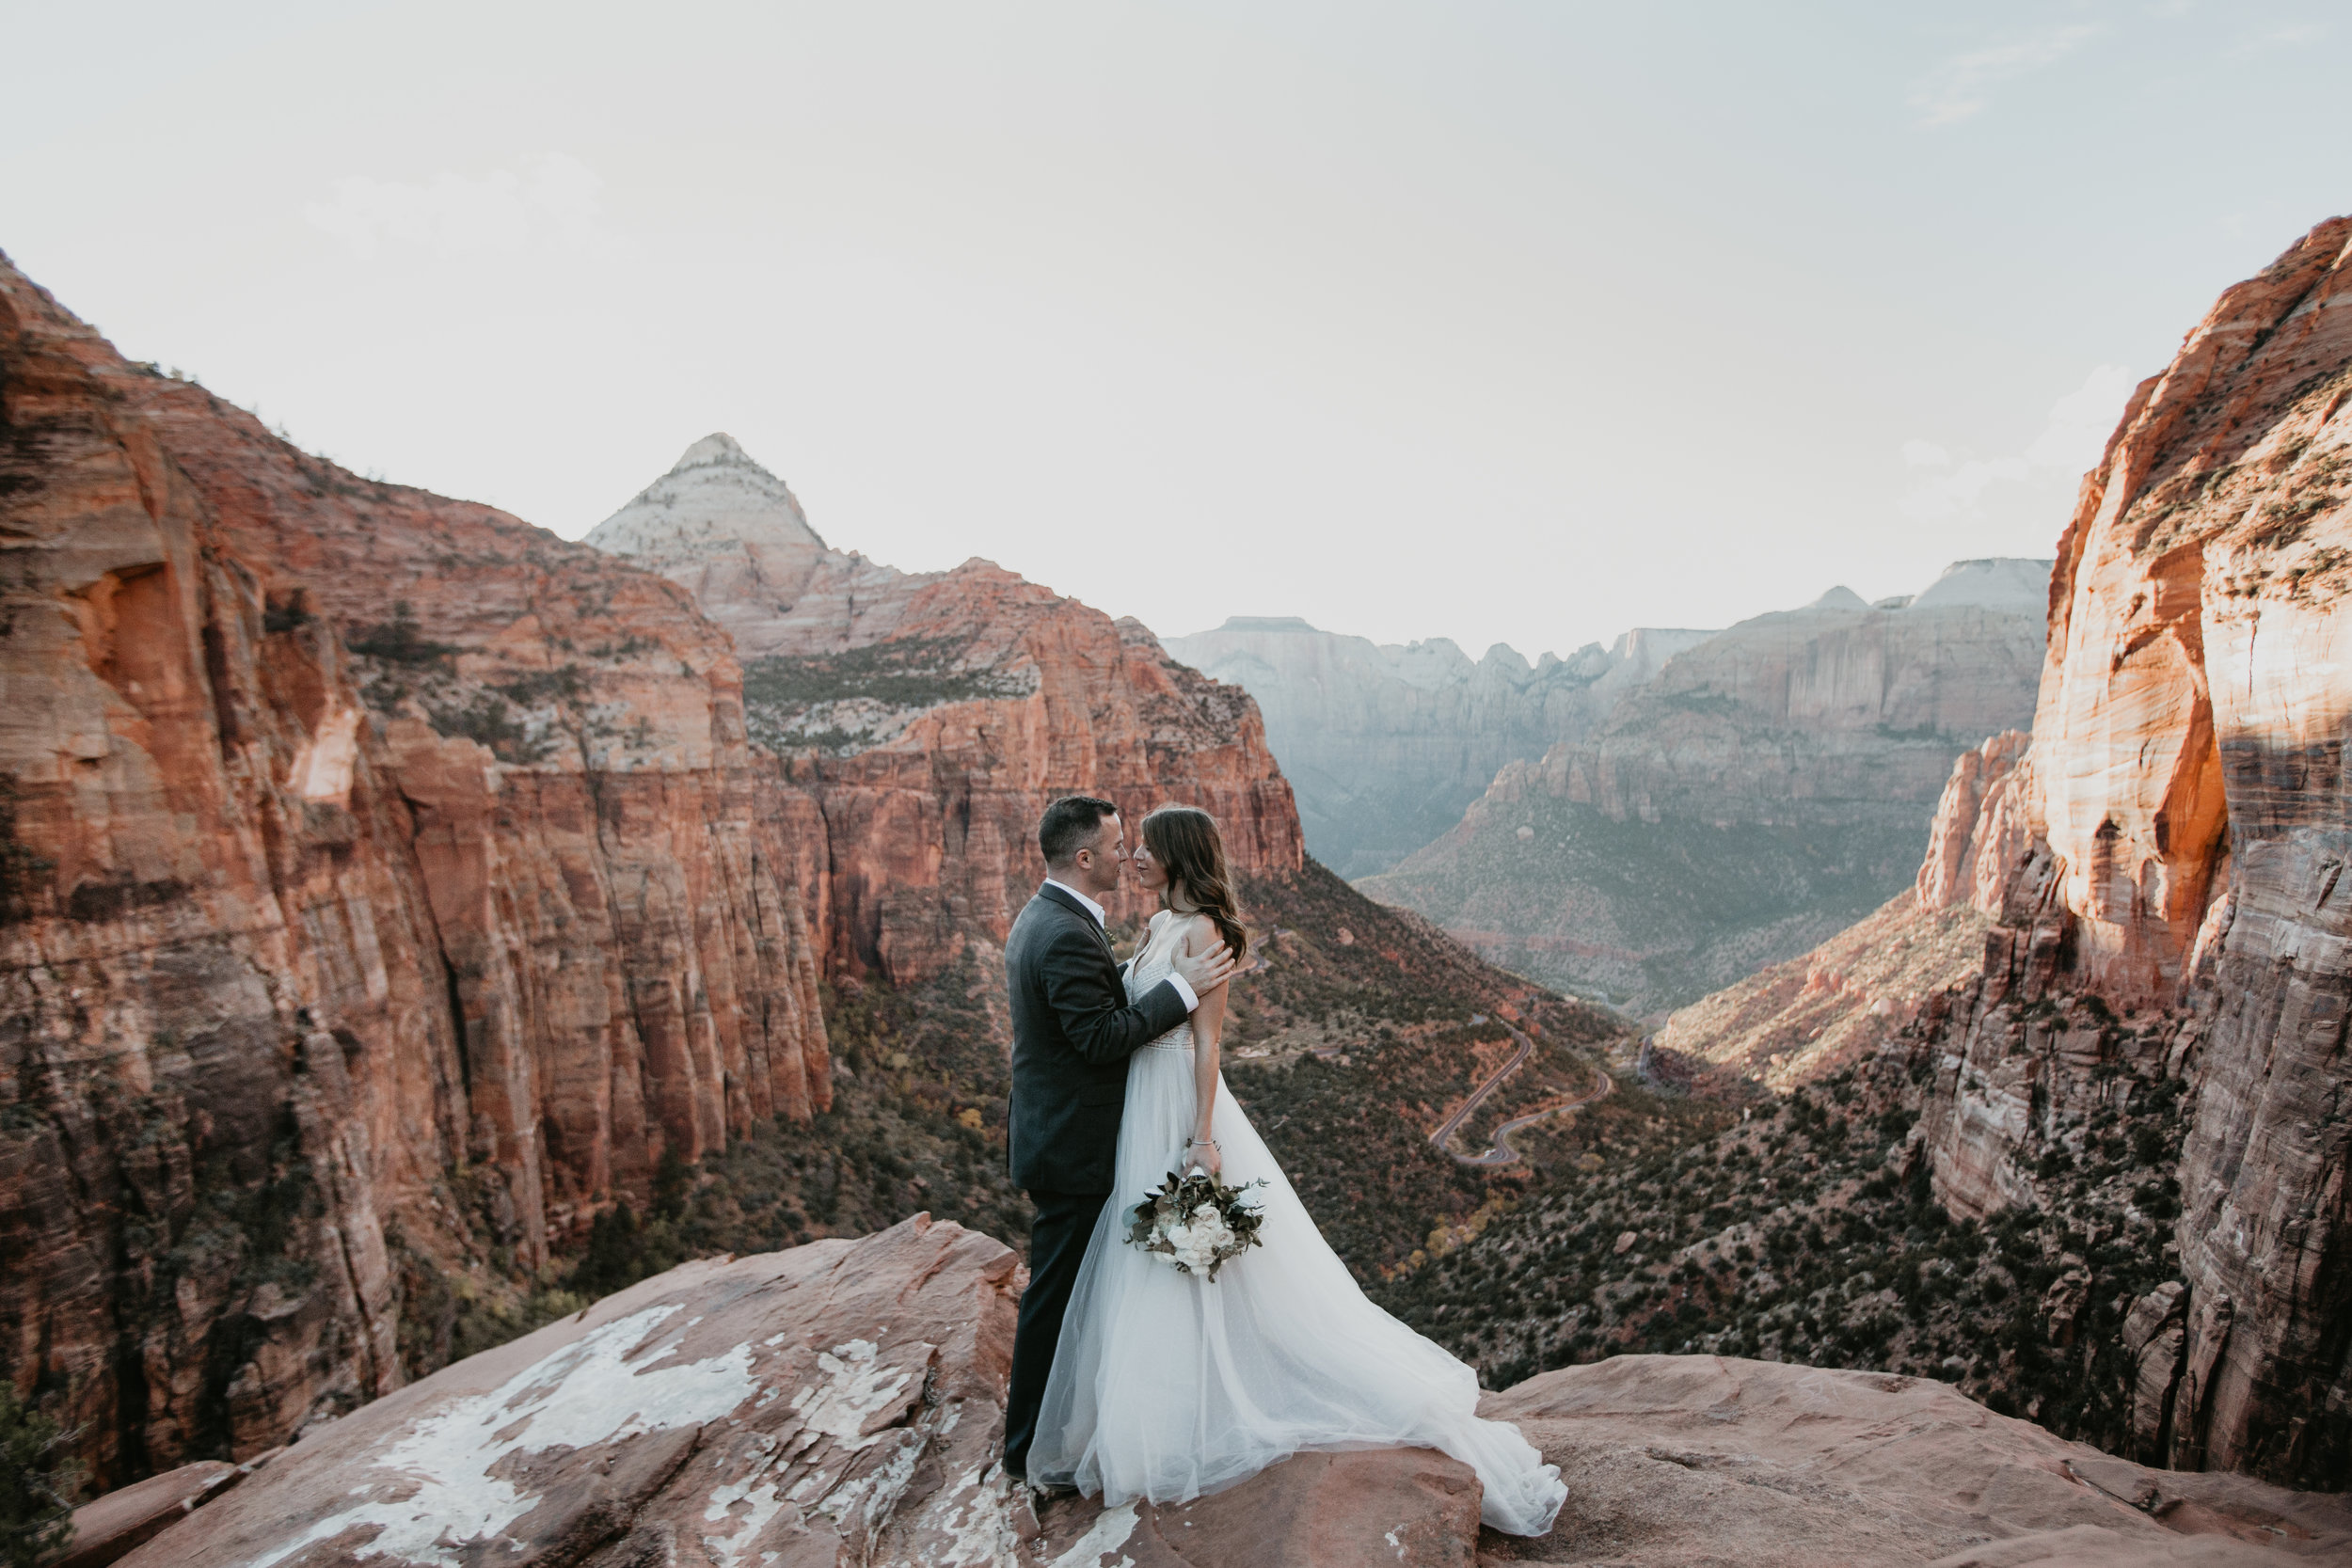 nicole-daacke-photography-zion-national-park-elopement-photographer-canyon-overlook-trail-elope-hiking-adventure-wedding-photos-fall-utah-red-rock-canyon-stgeorge-eloping-photographer-40.jpg